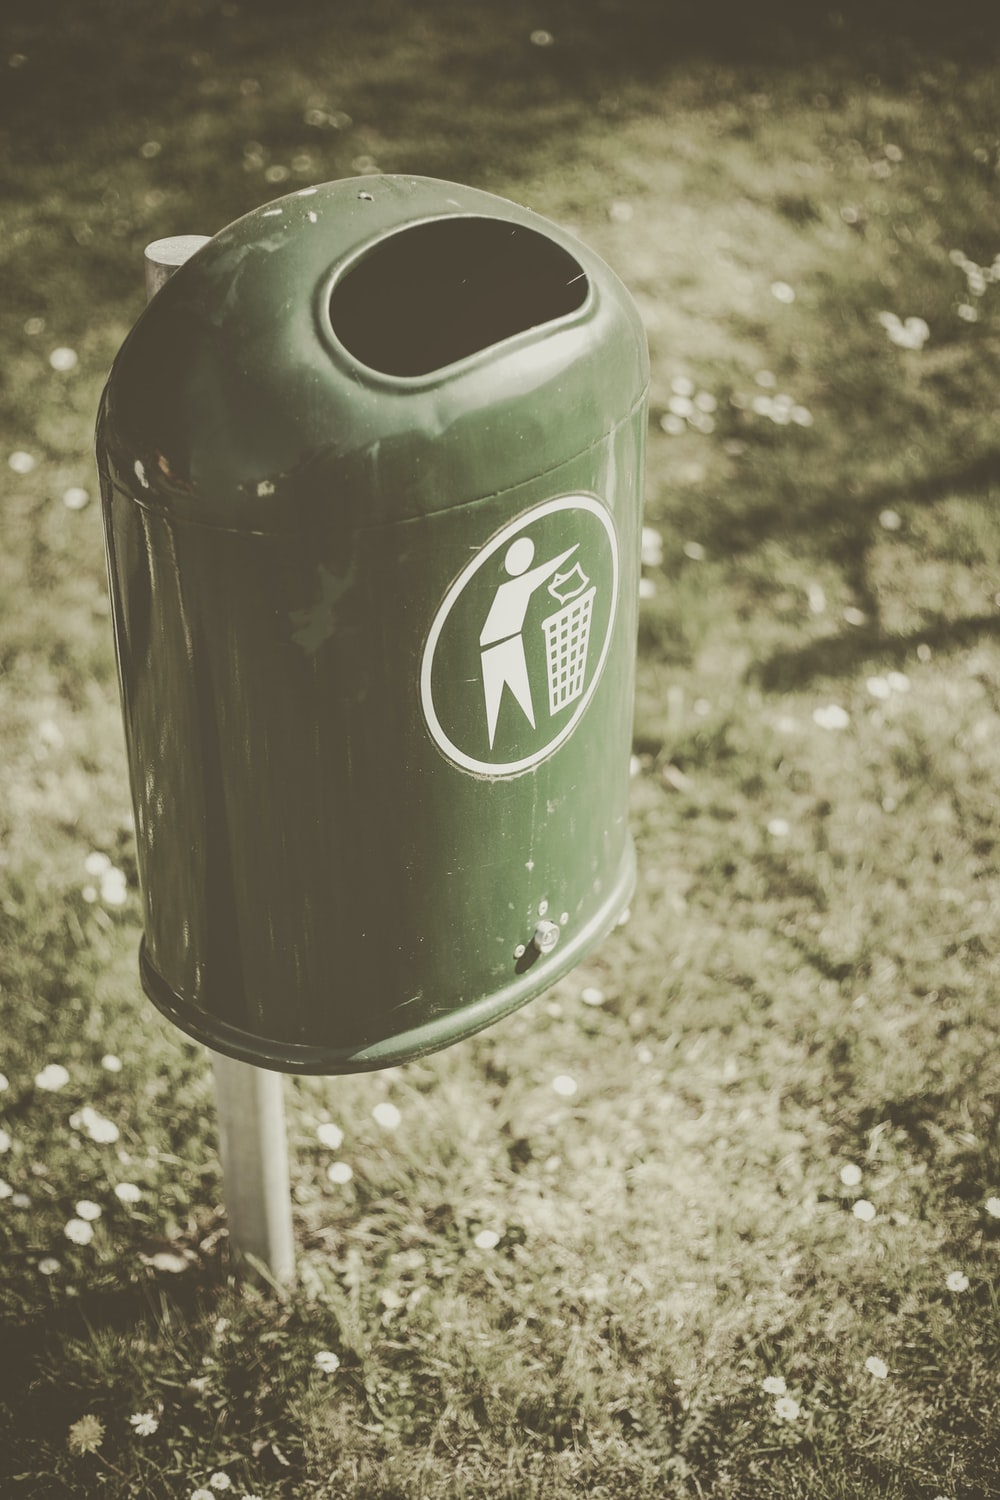 selective focus photo of green trash bin